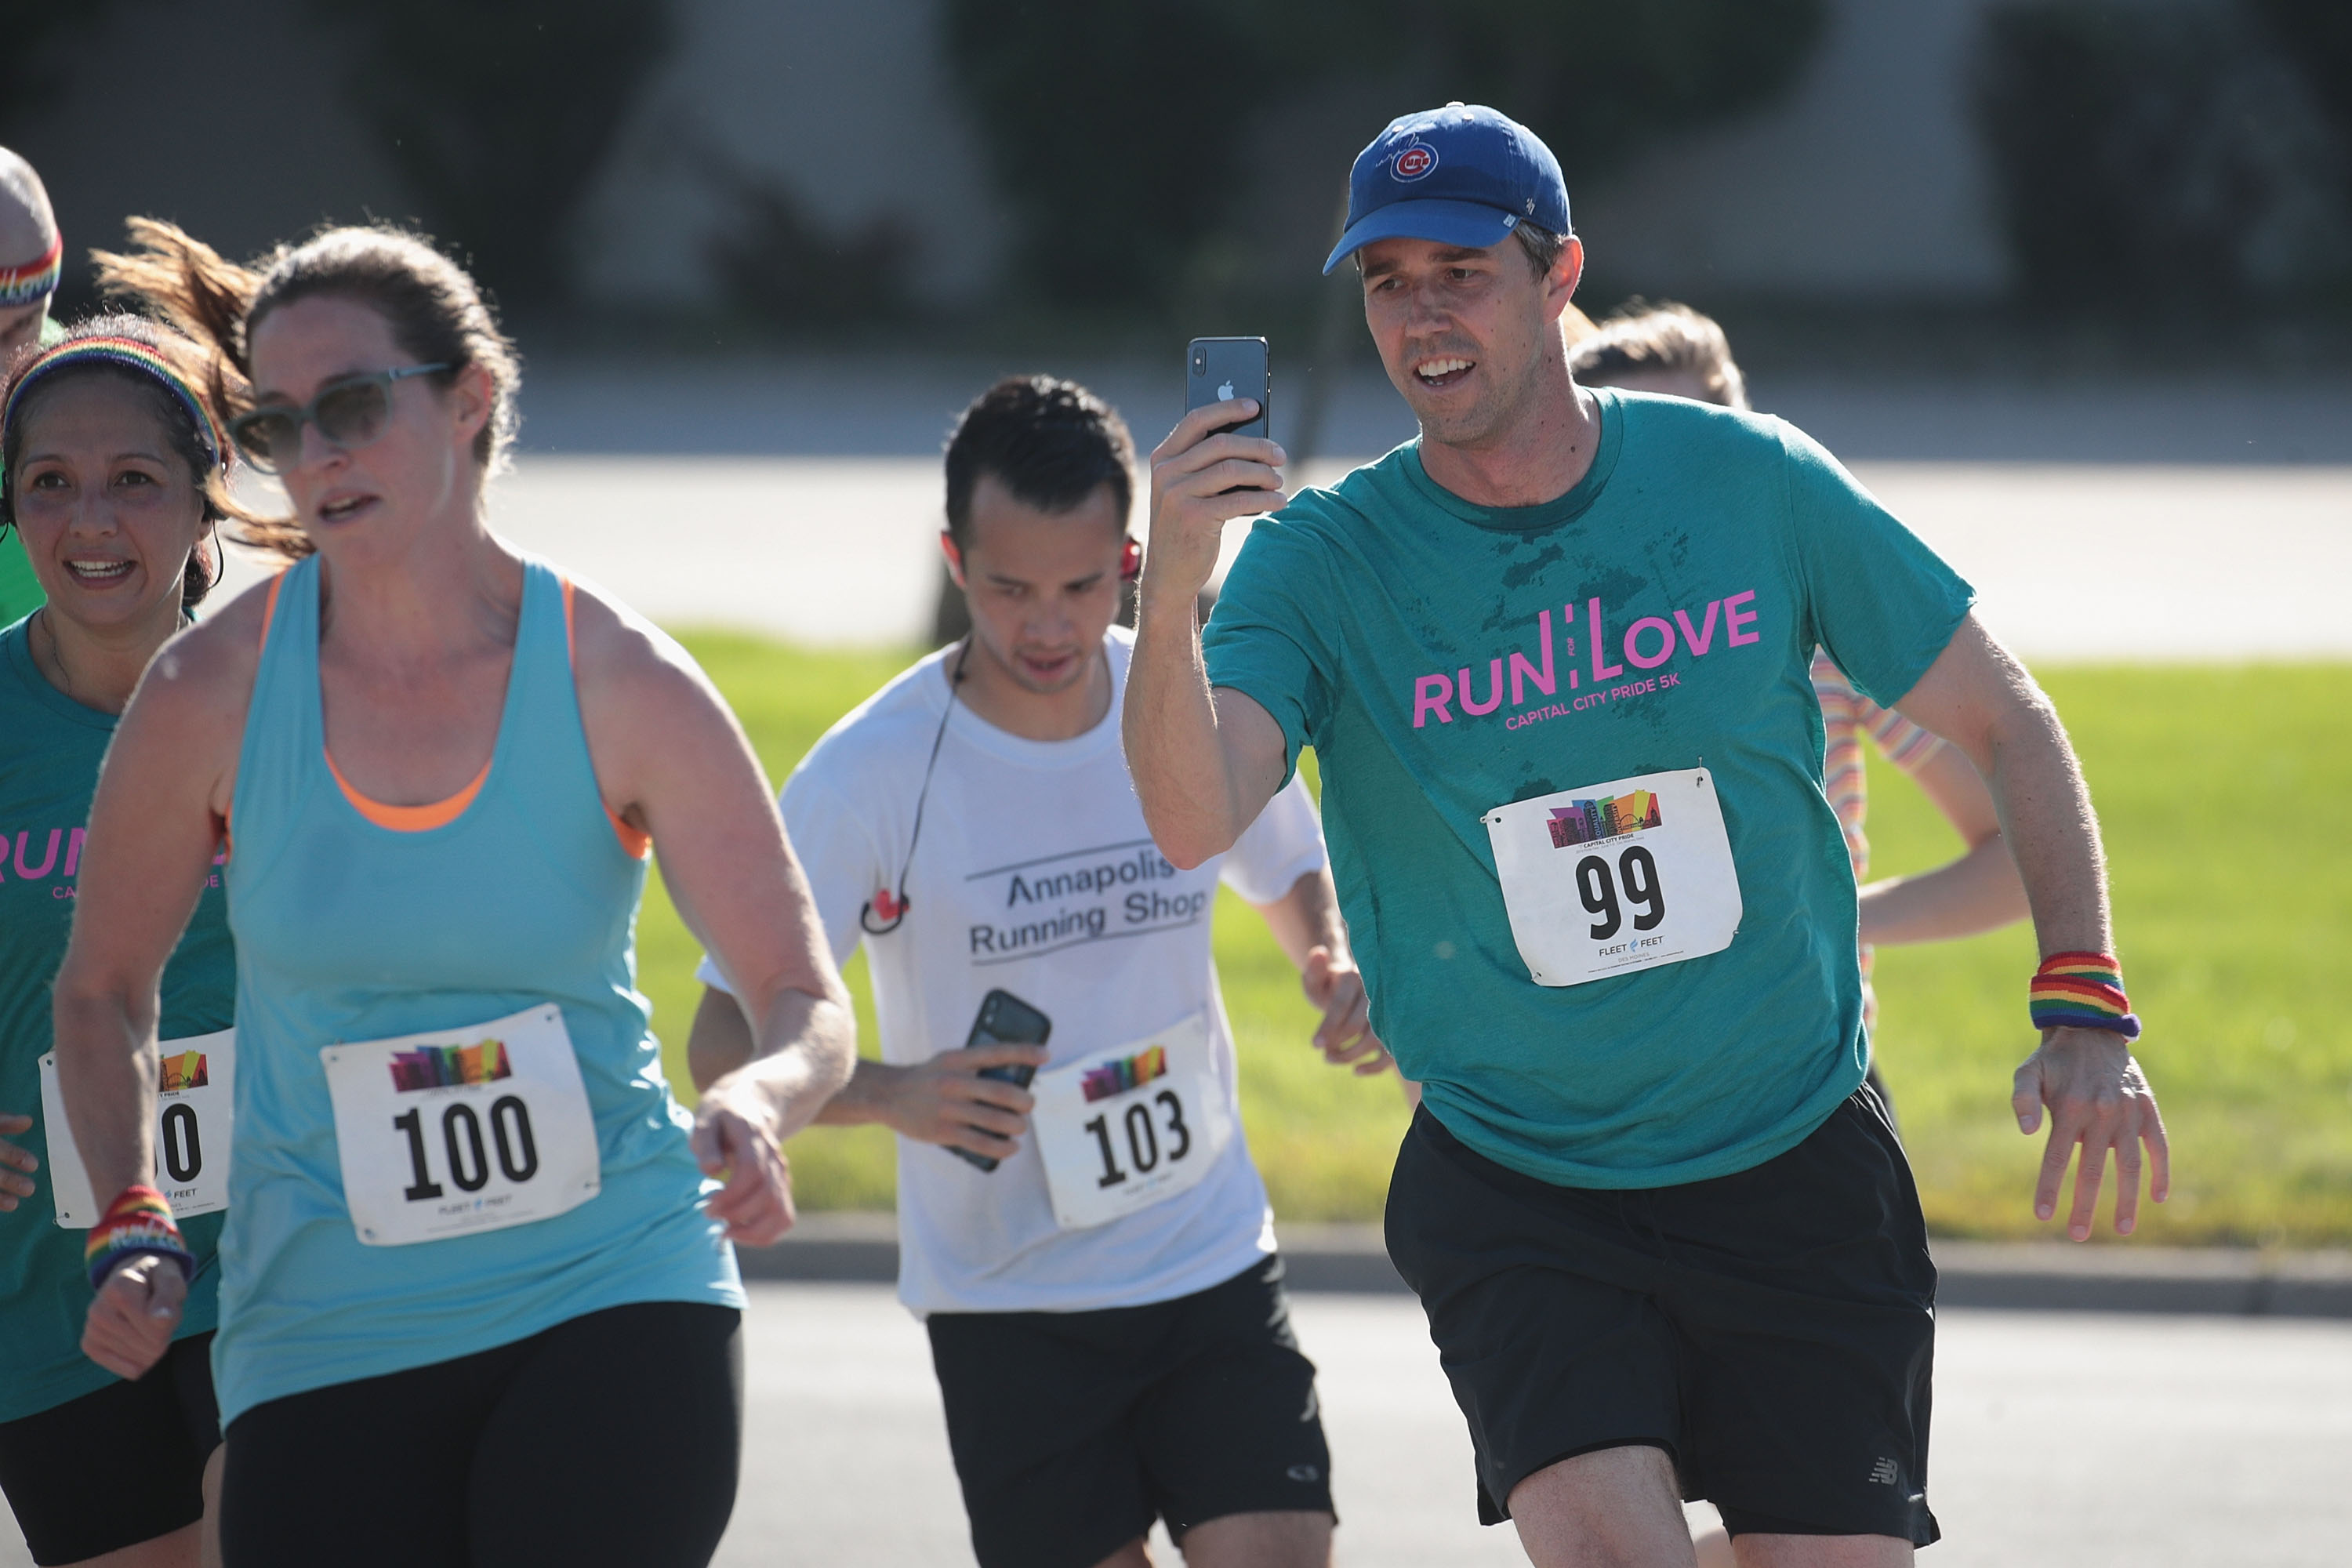 Democratic presidential candidate and former Texas congressman Beto O'Rourke nears the finish line behind his wife Amy in the Pride Fest Fun Run 5K on June 08, 2019 in Des Moines, Iowa. (Photo by Scott Olson/Getty Images)